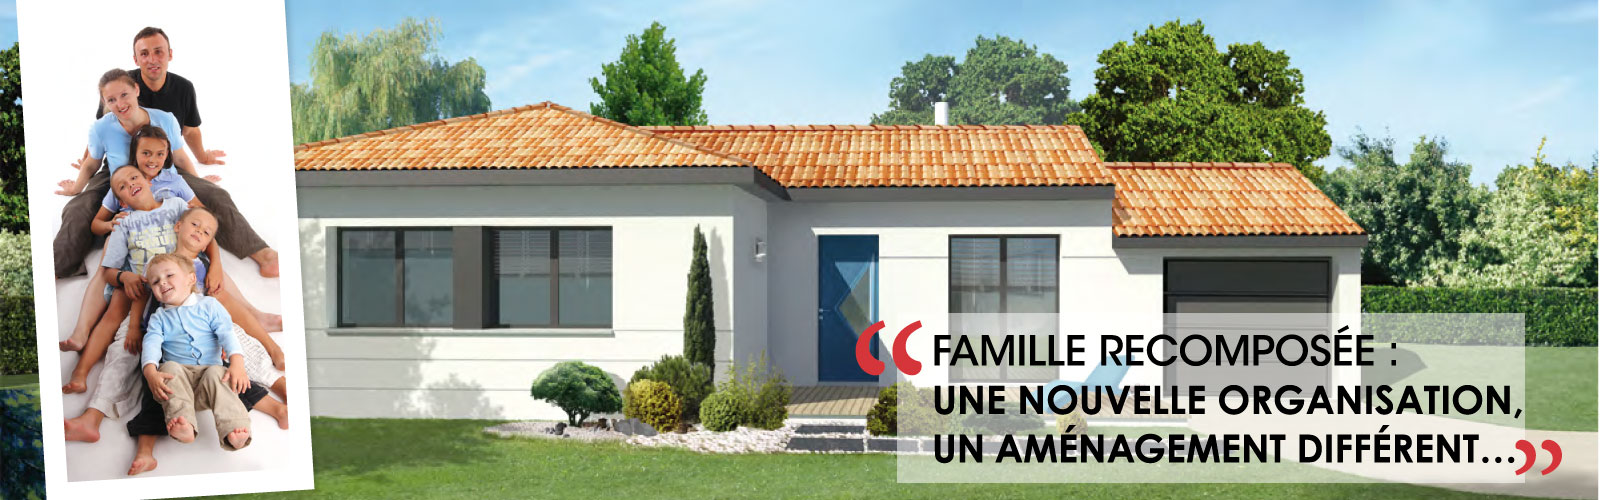 MAISONS_CHANTAL_B_famille_recomposee